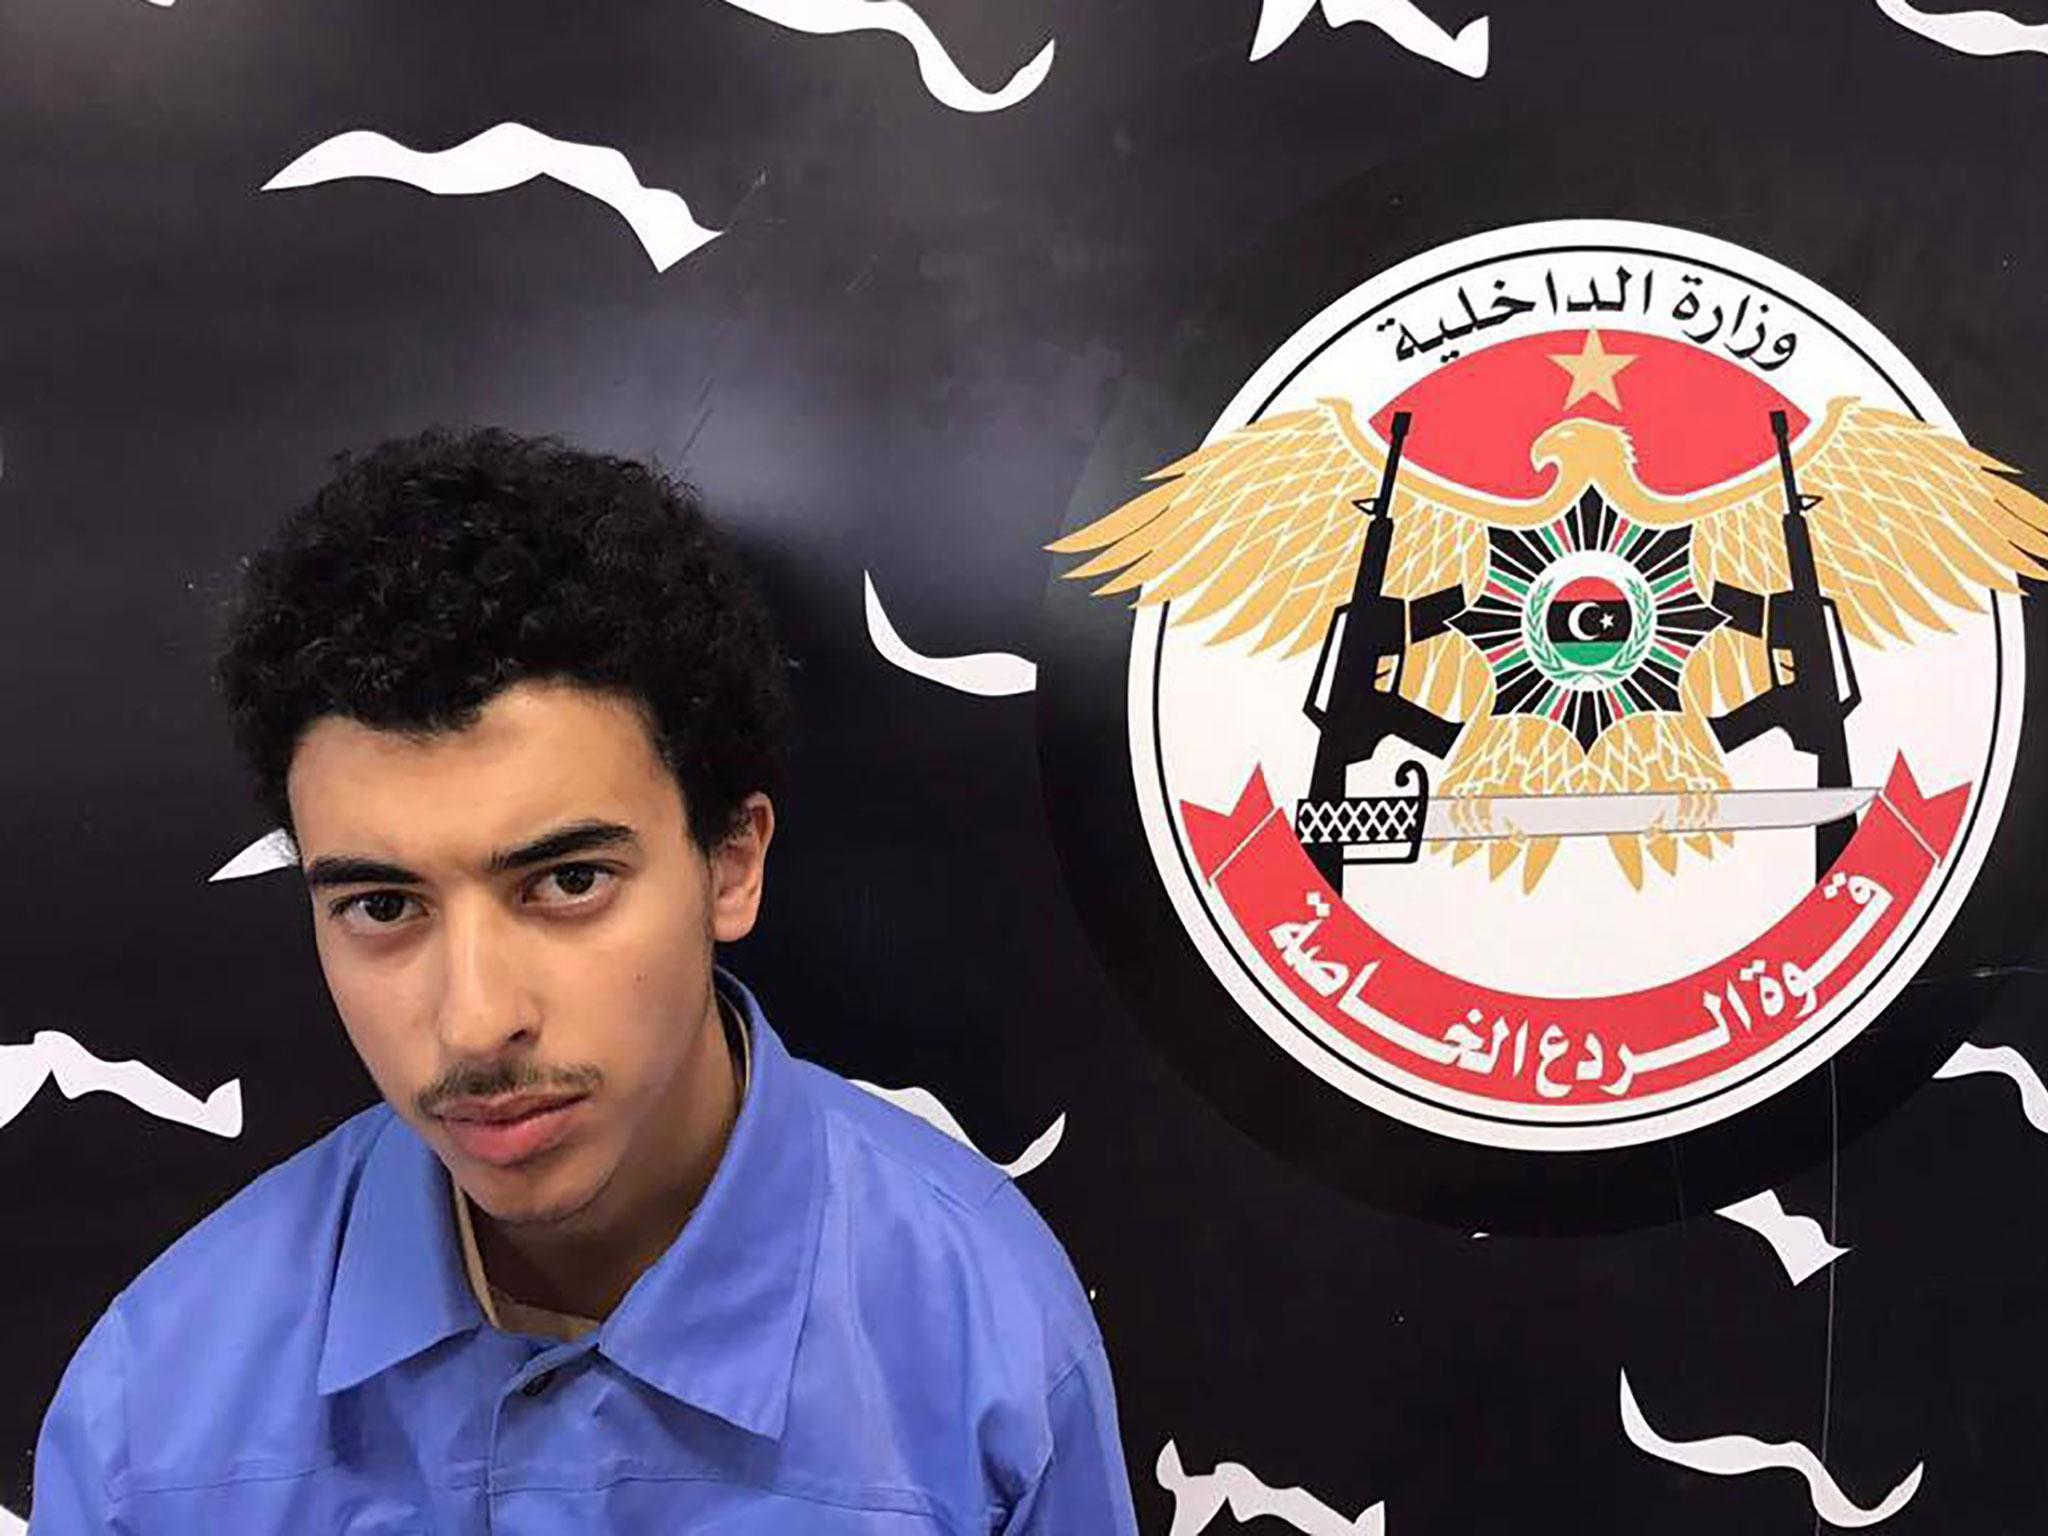 Manchester bomber's brother will be extradited this year, says Libyan prime minister